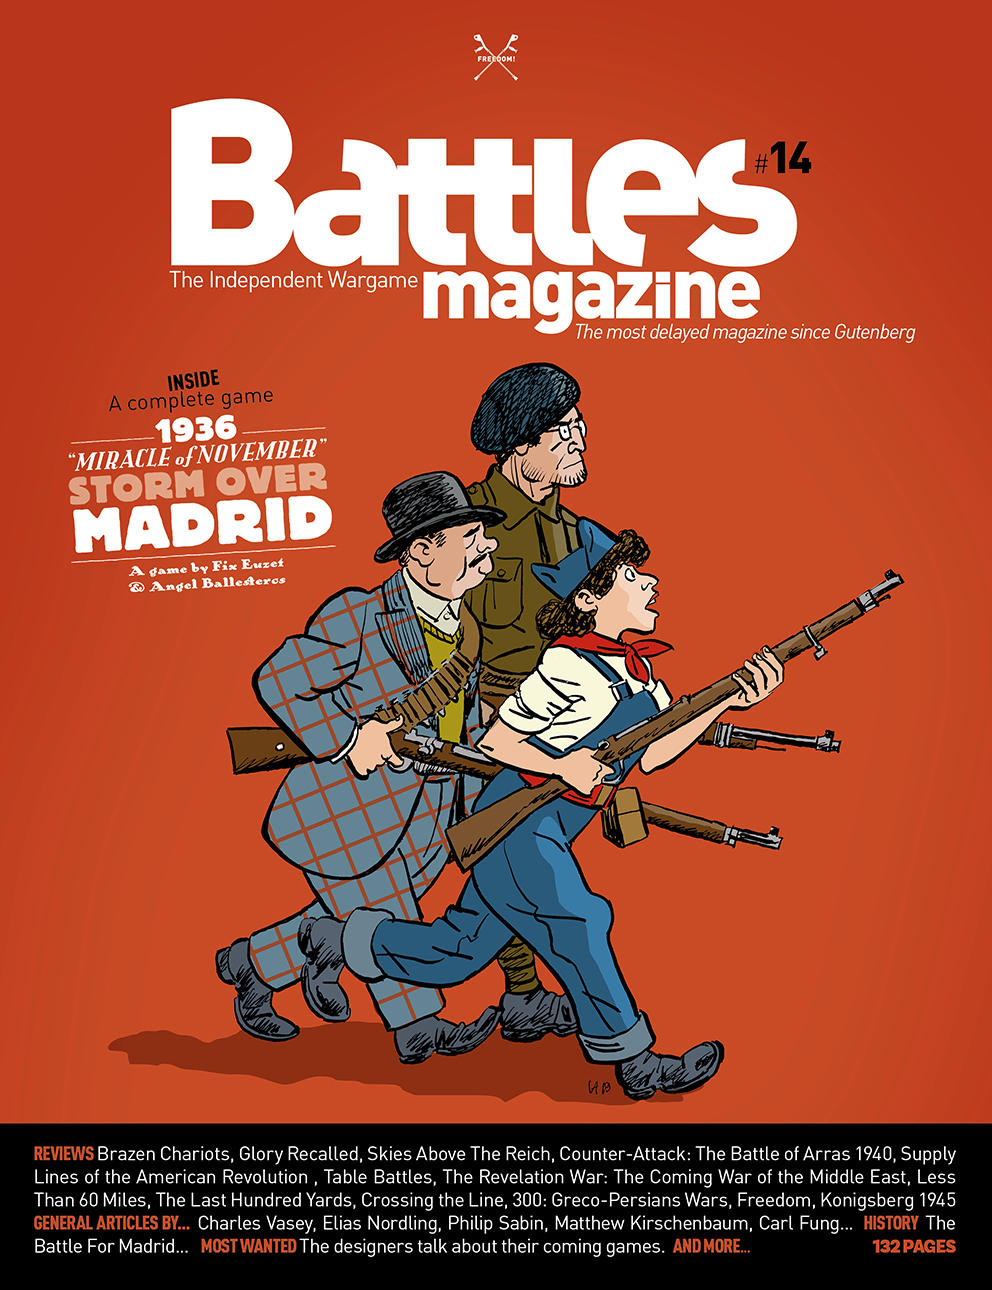 battles-magazine-14-li-an-couv